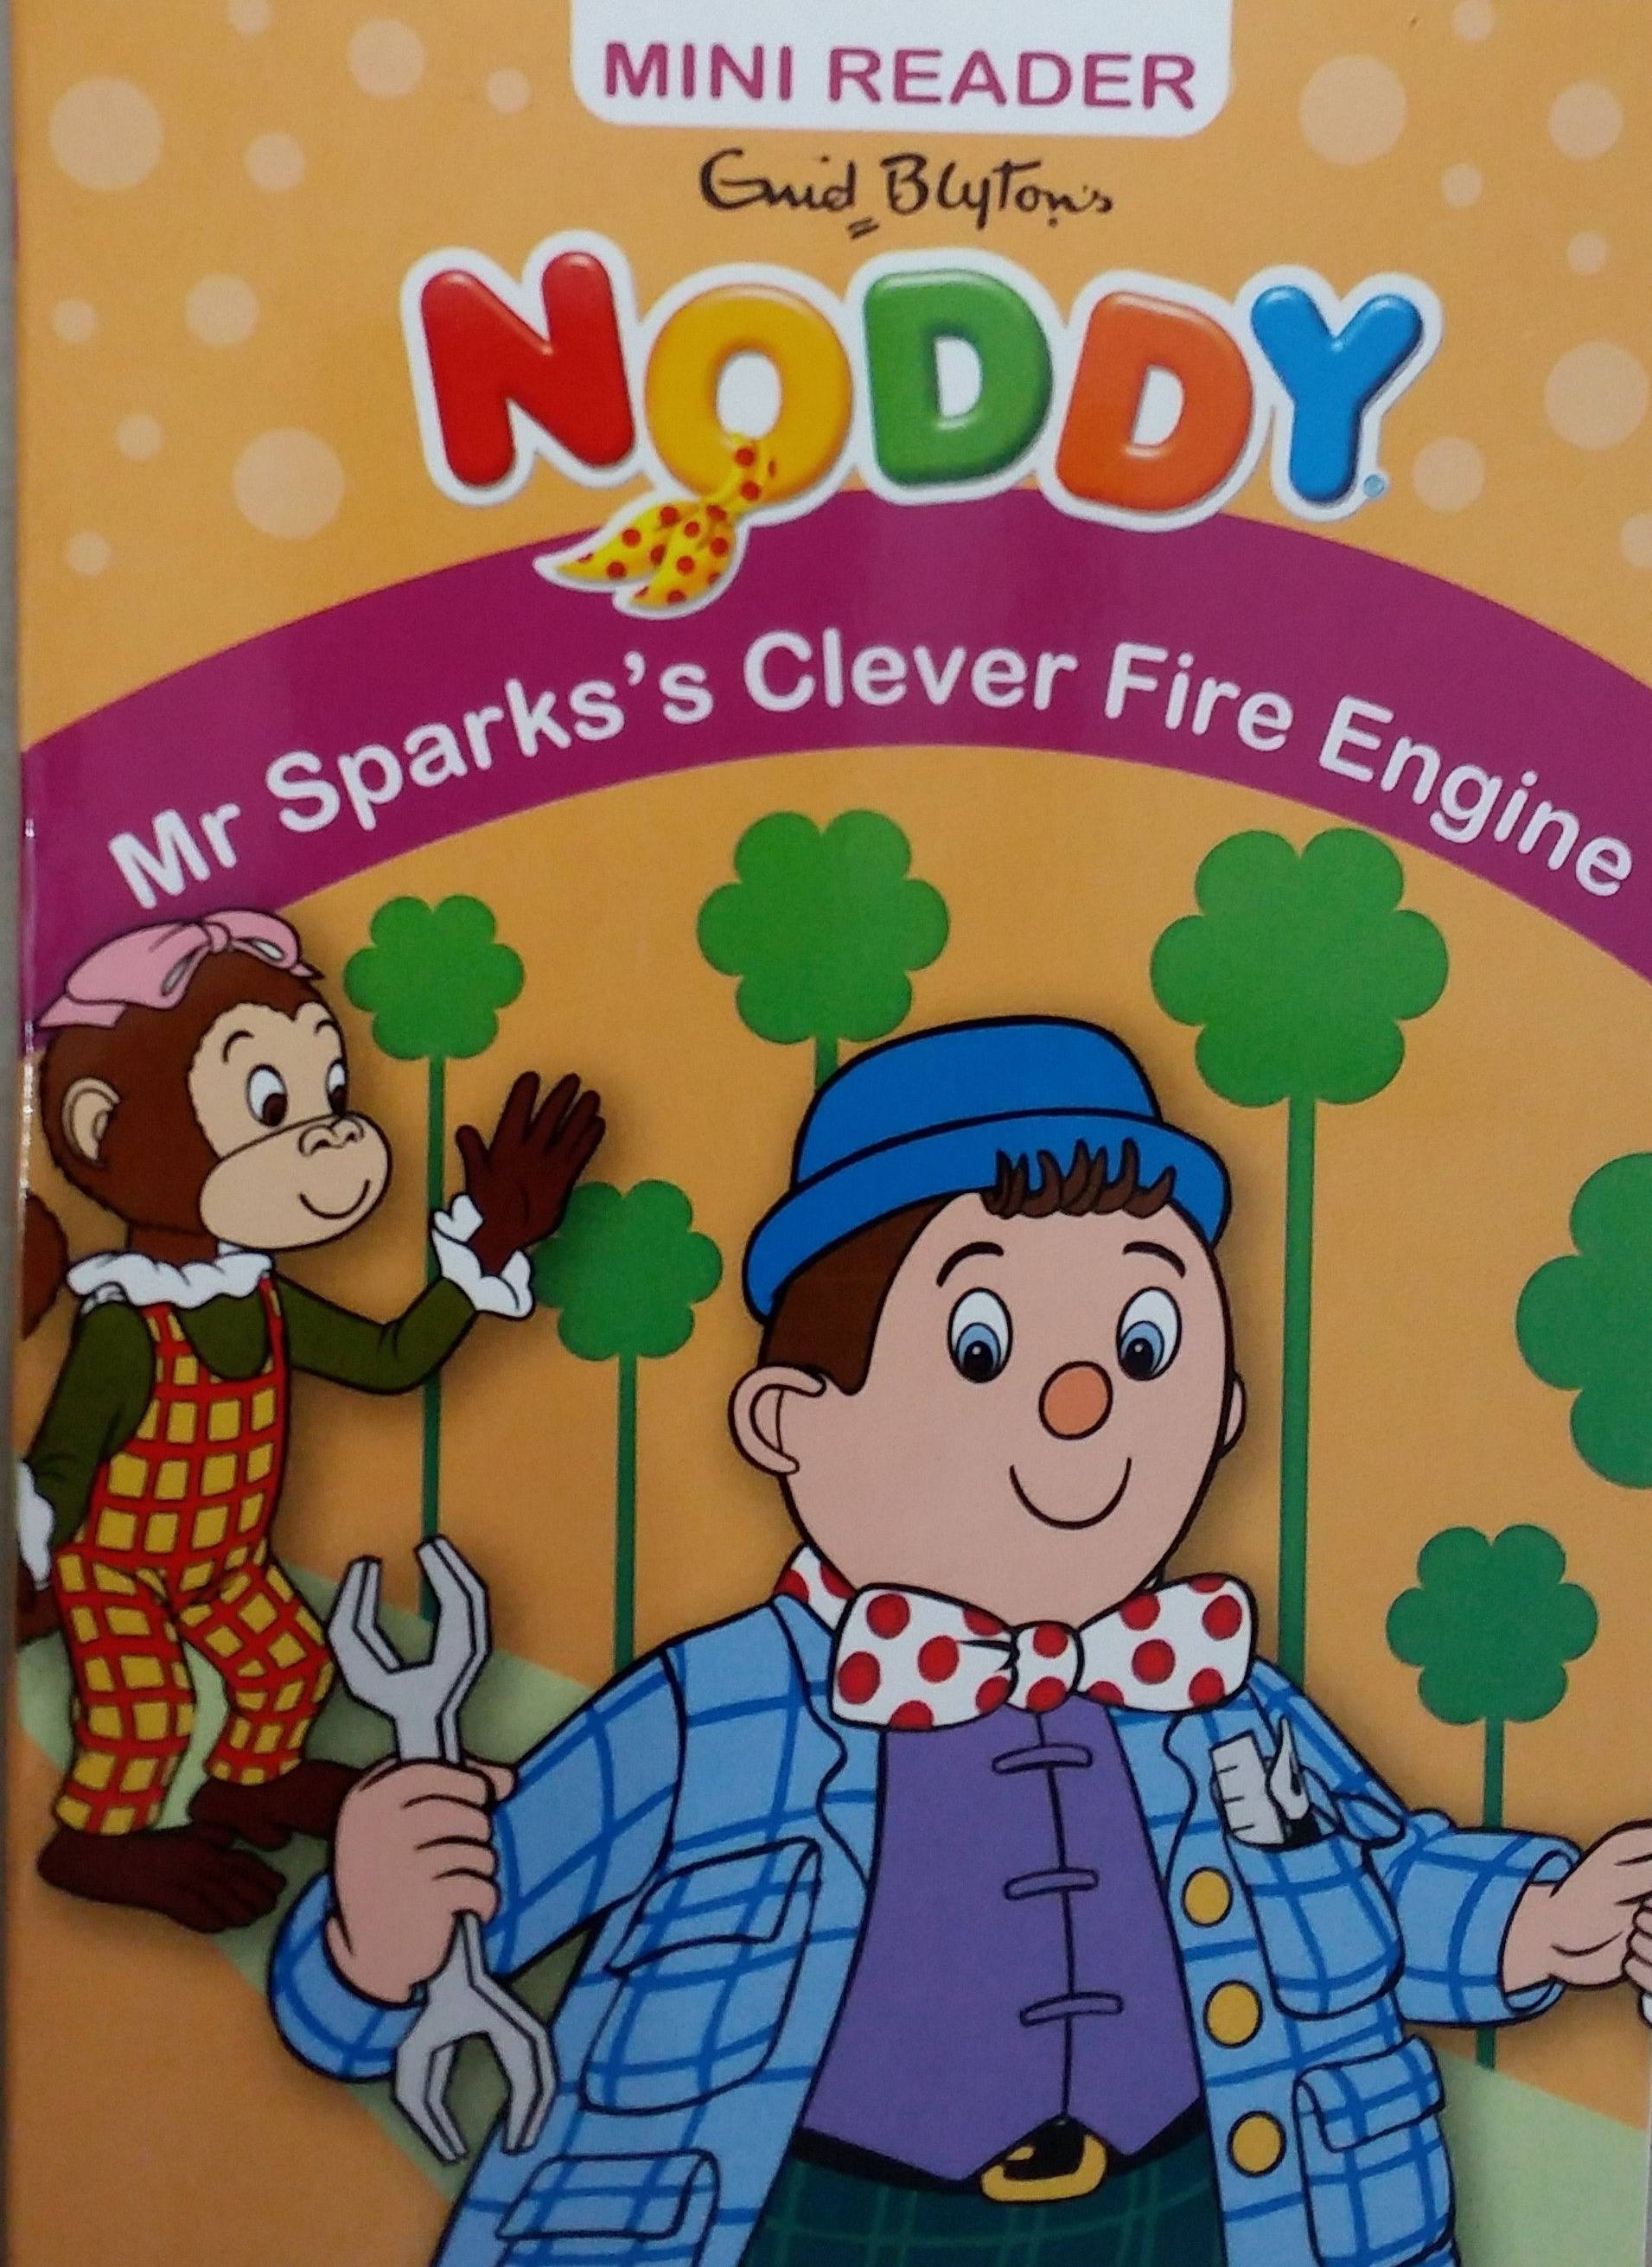 NODDY MINI READER MR SPARK'S CLEVER FIRE ENGINE